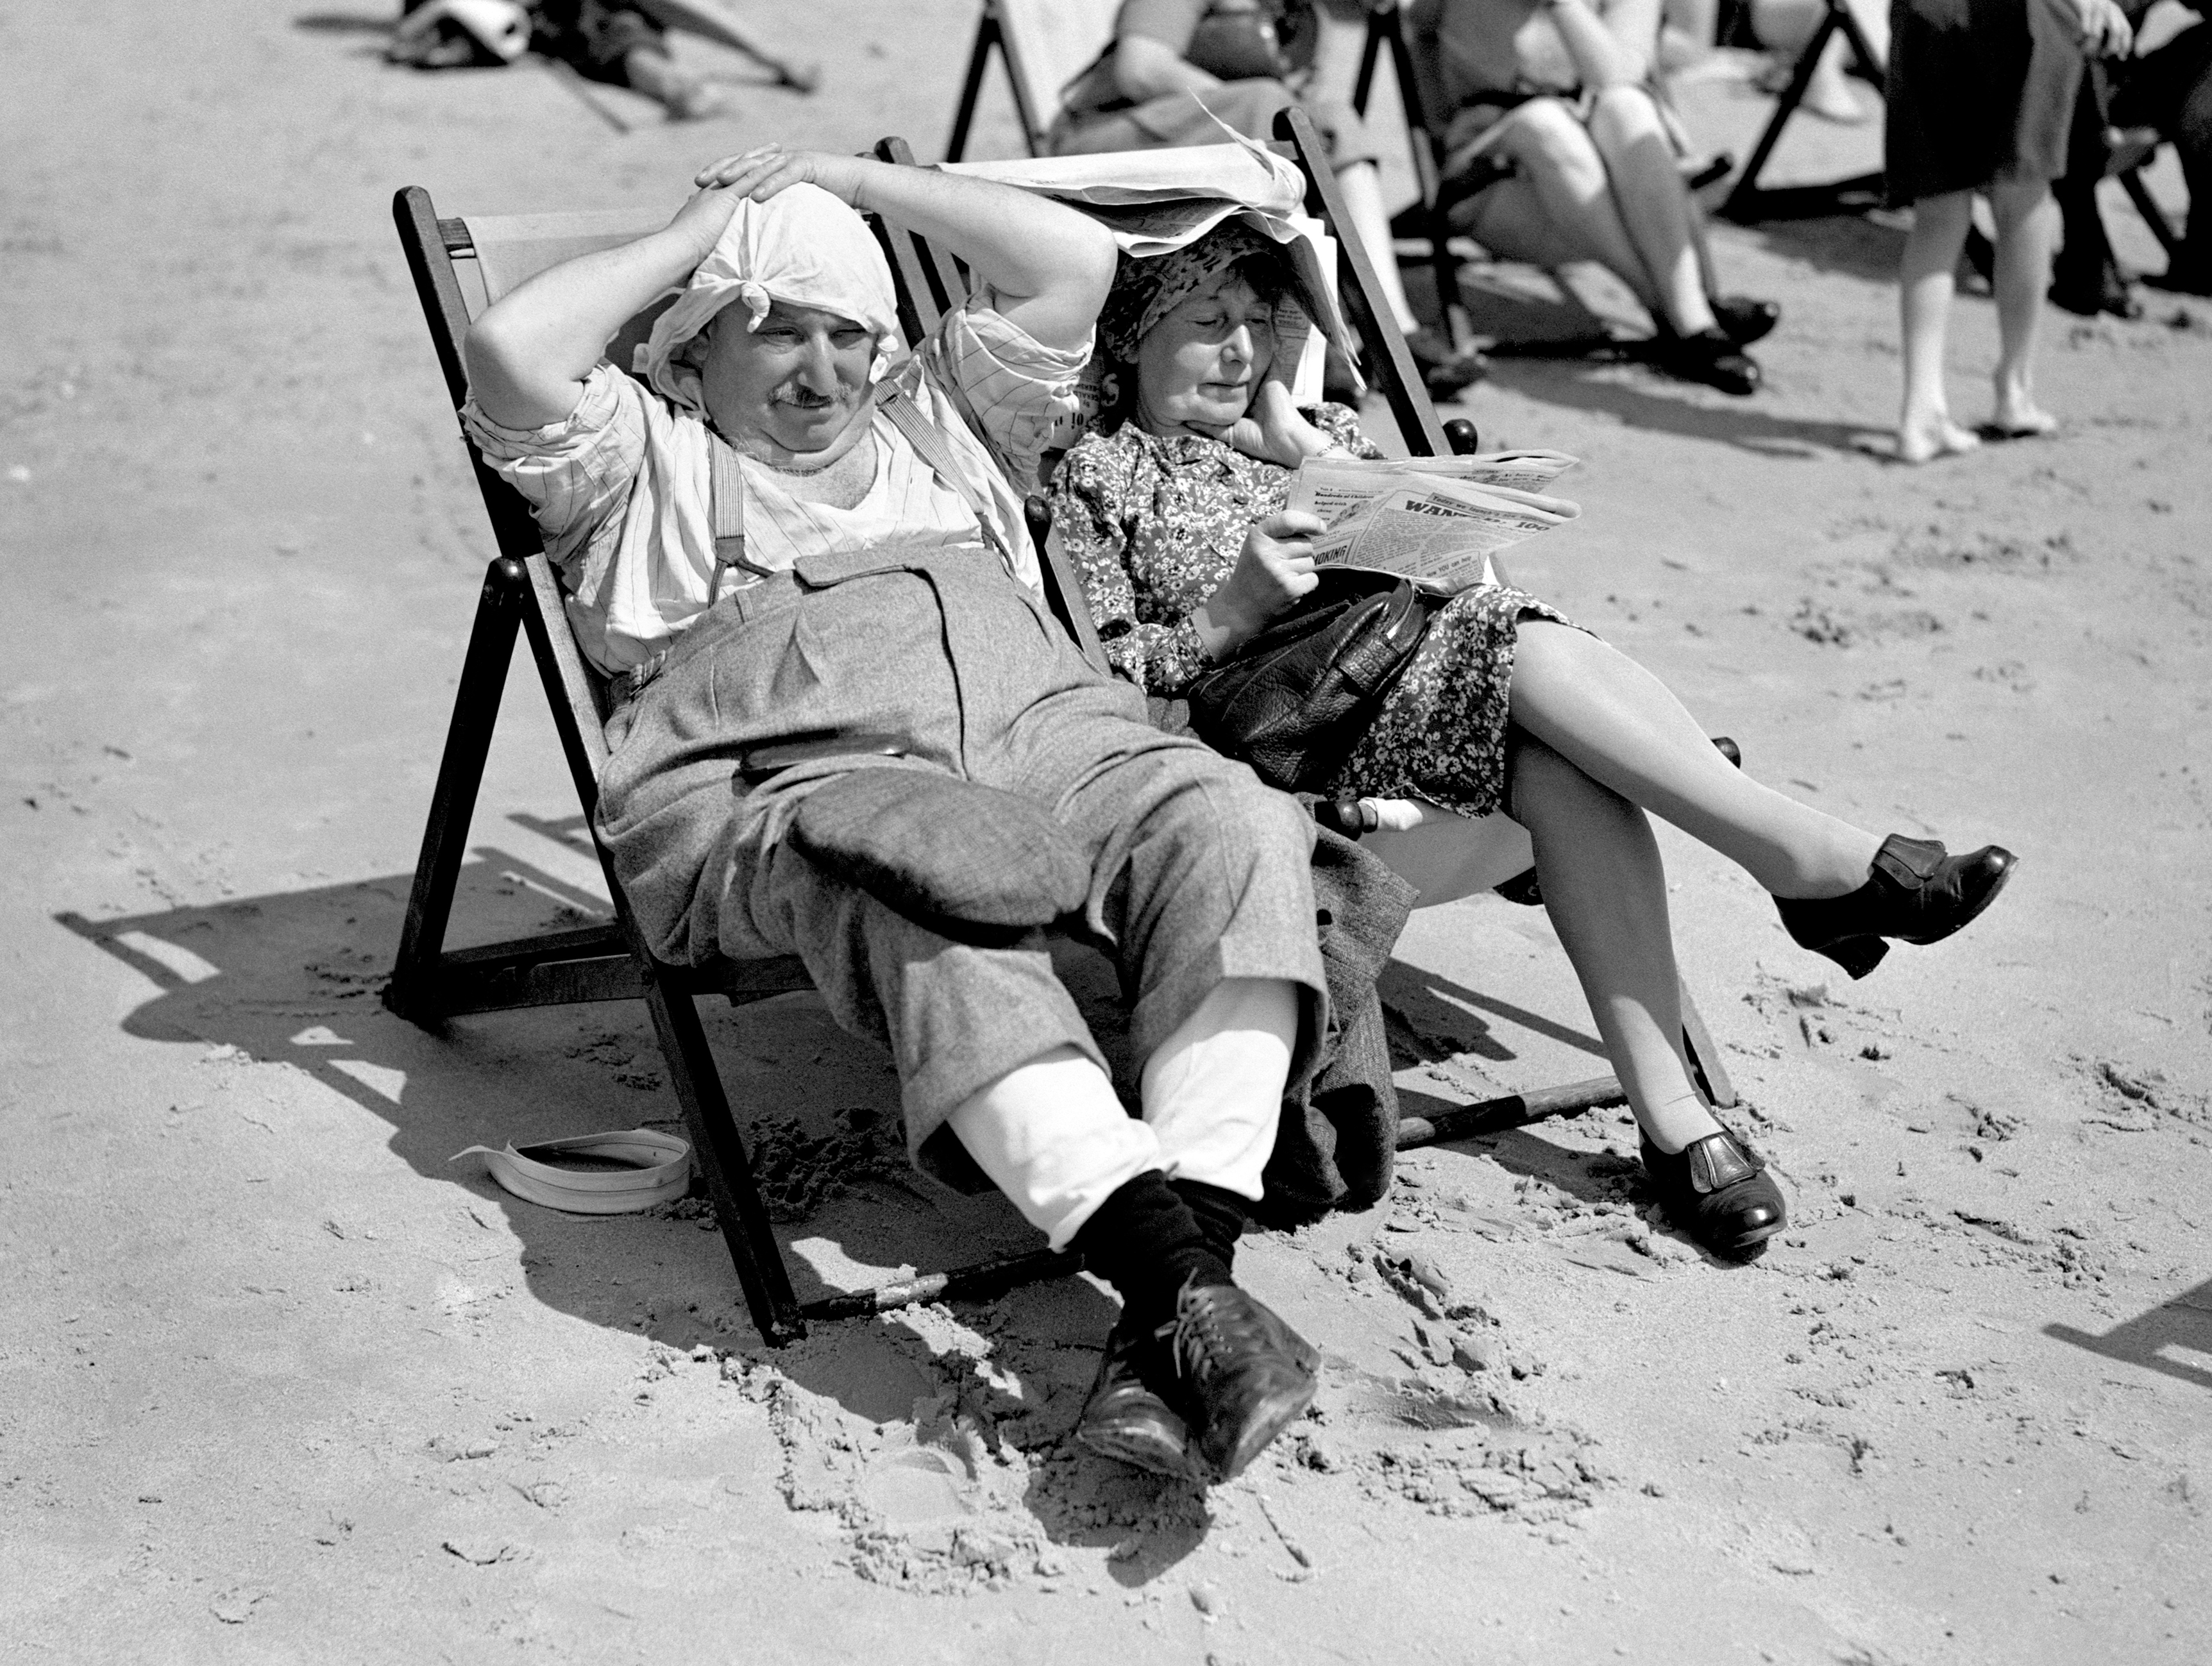 Older holidaymakers sunbathing on Bournemouth beach